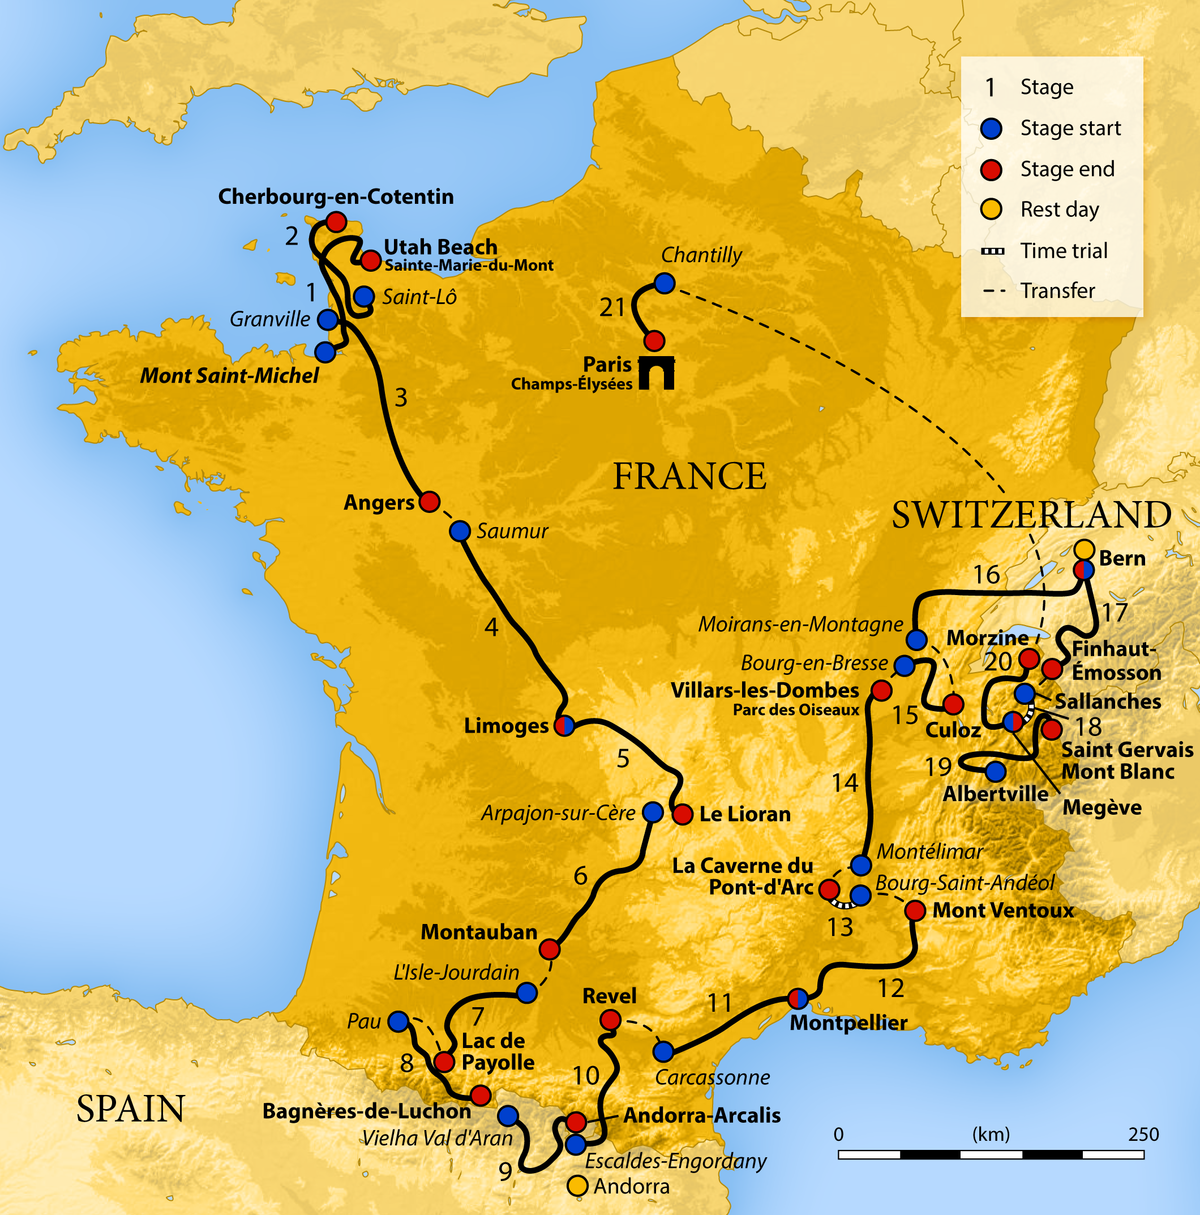 1200px-2016_Tour_de_France_map Le Of Maps on map of oa, map of une, map of re, map of sn, map of js, map of cl, map of zi, map of ta, map of lp, map of ra, map of qi, map of gl, map of cf, map of high line, map of er, map of ps, map of vb, map of ke, map of ob, map of xi,